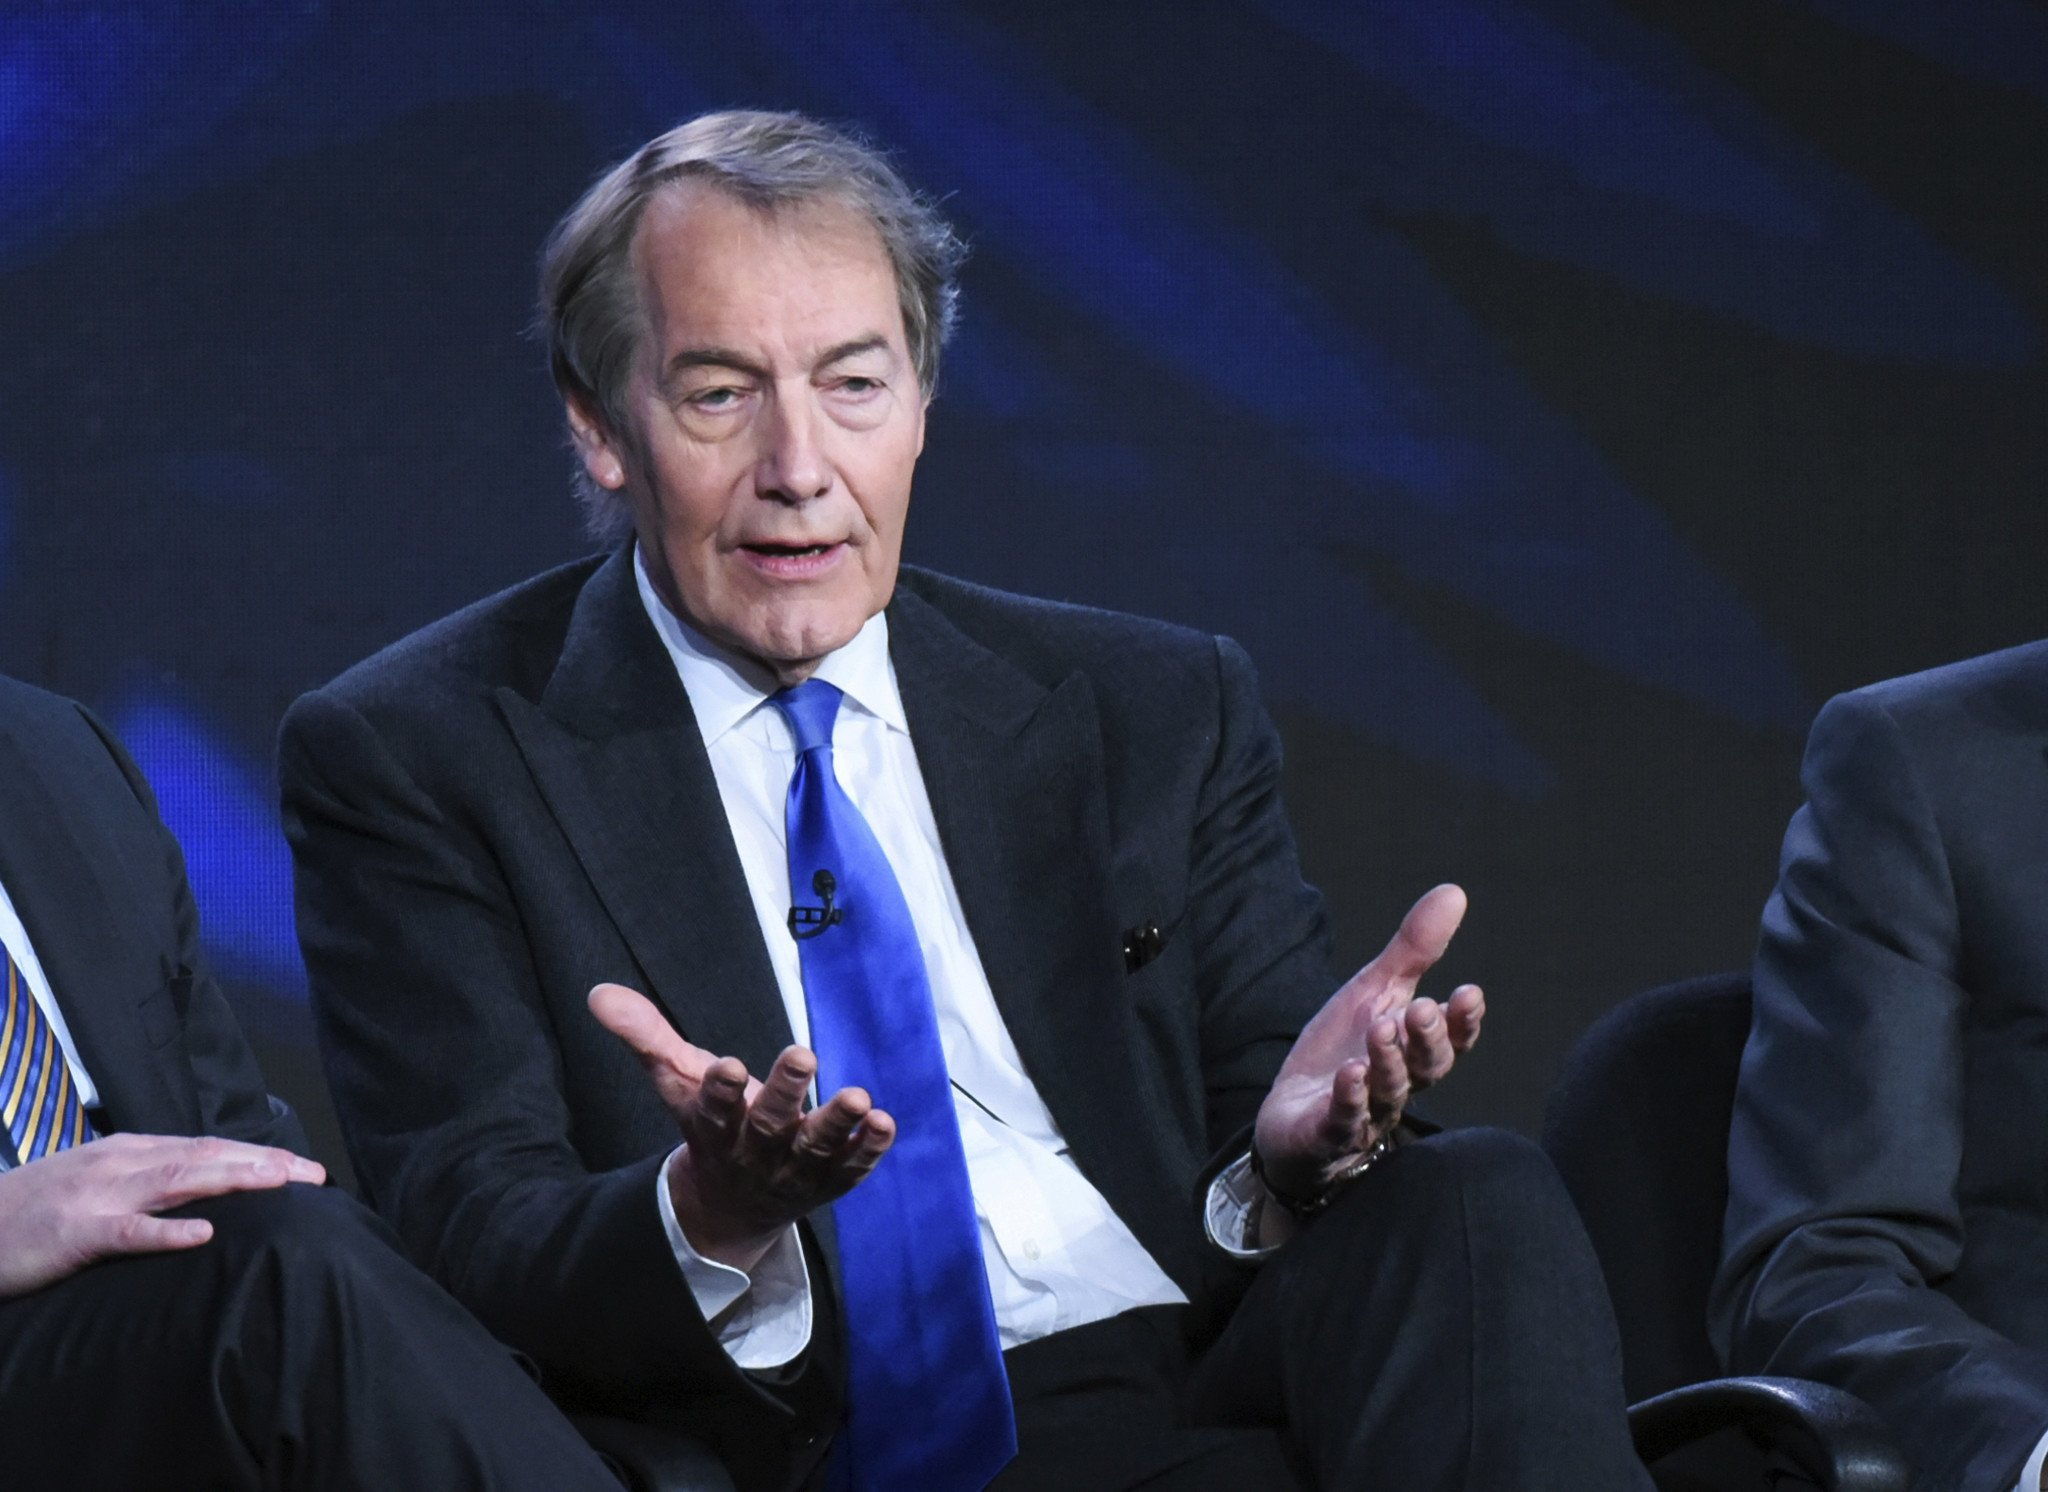 CASTING COUCH Liberal TV Legend Charlie Rose Accused by Eight